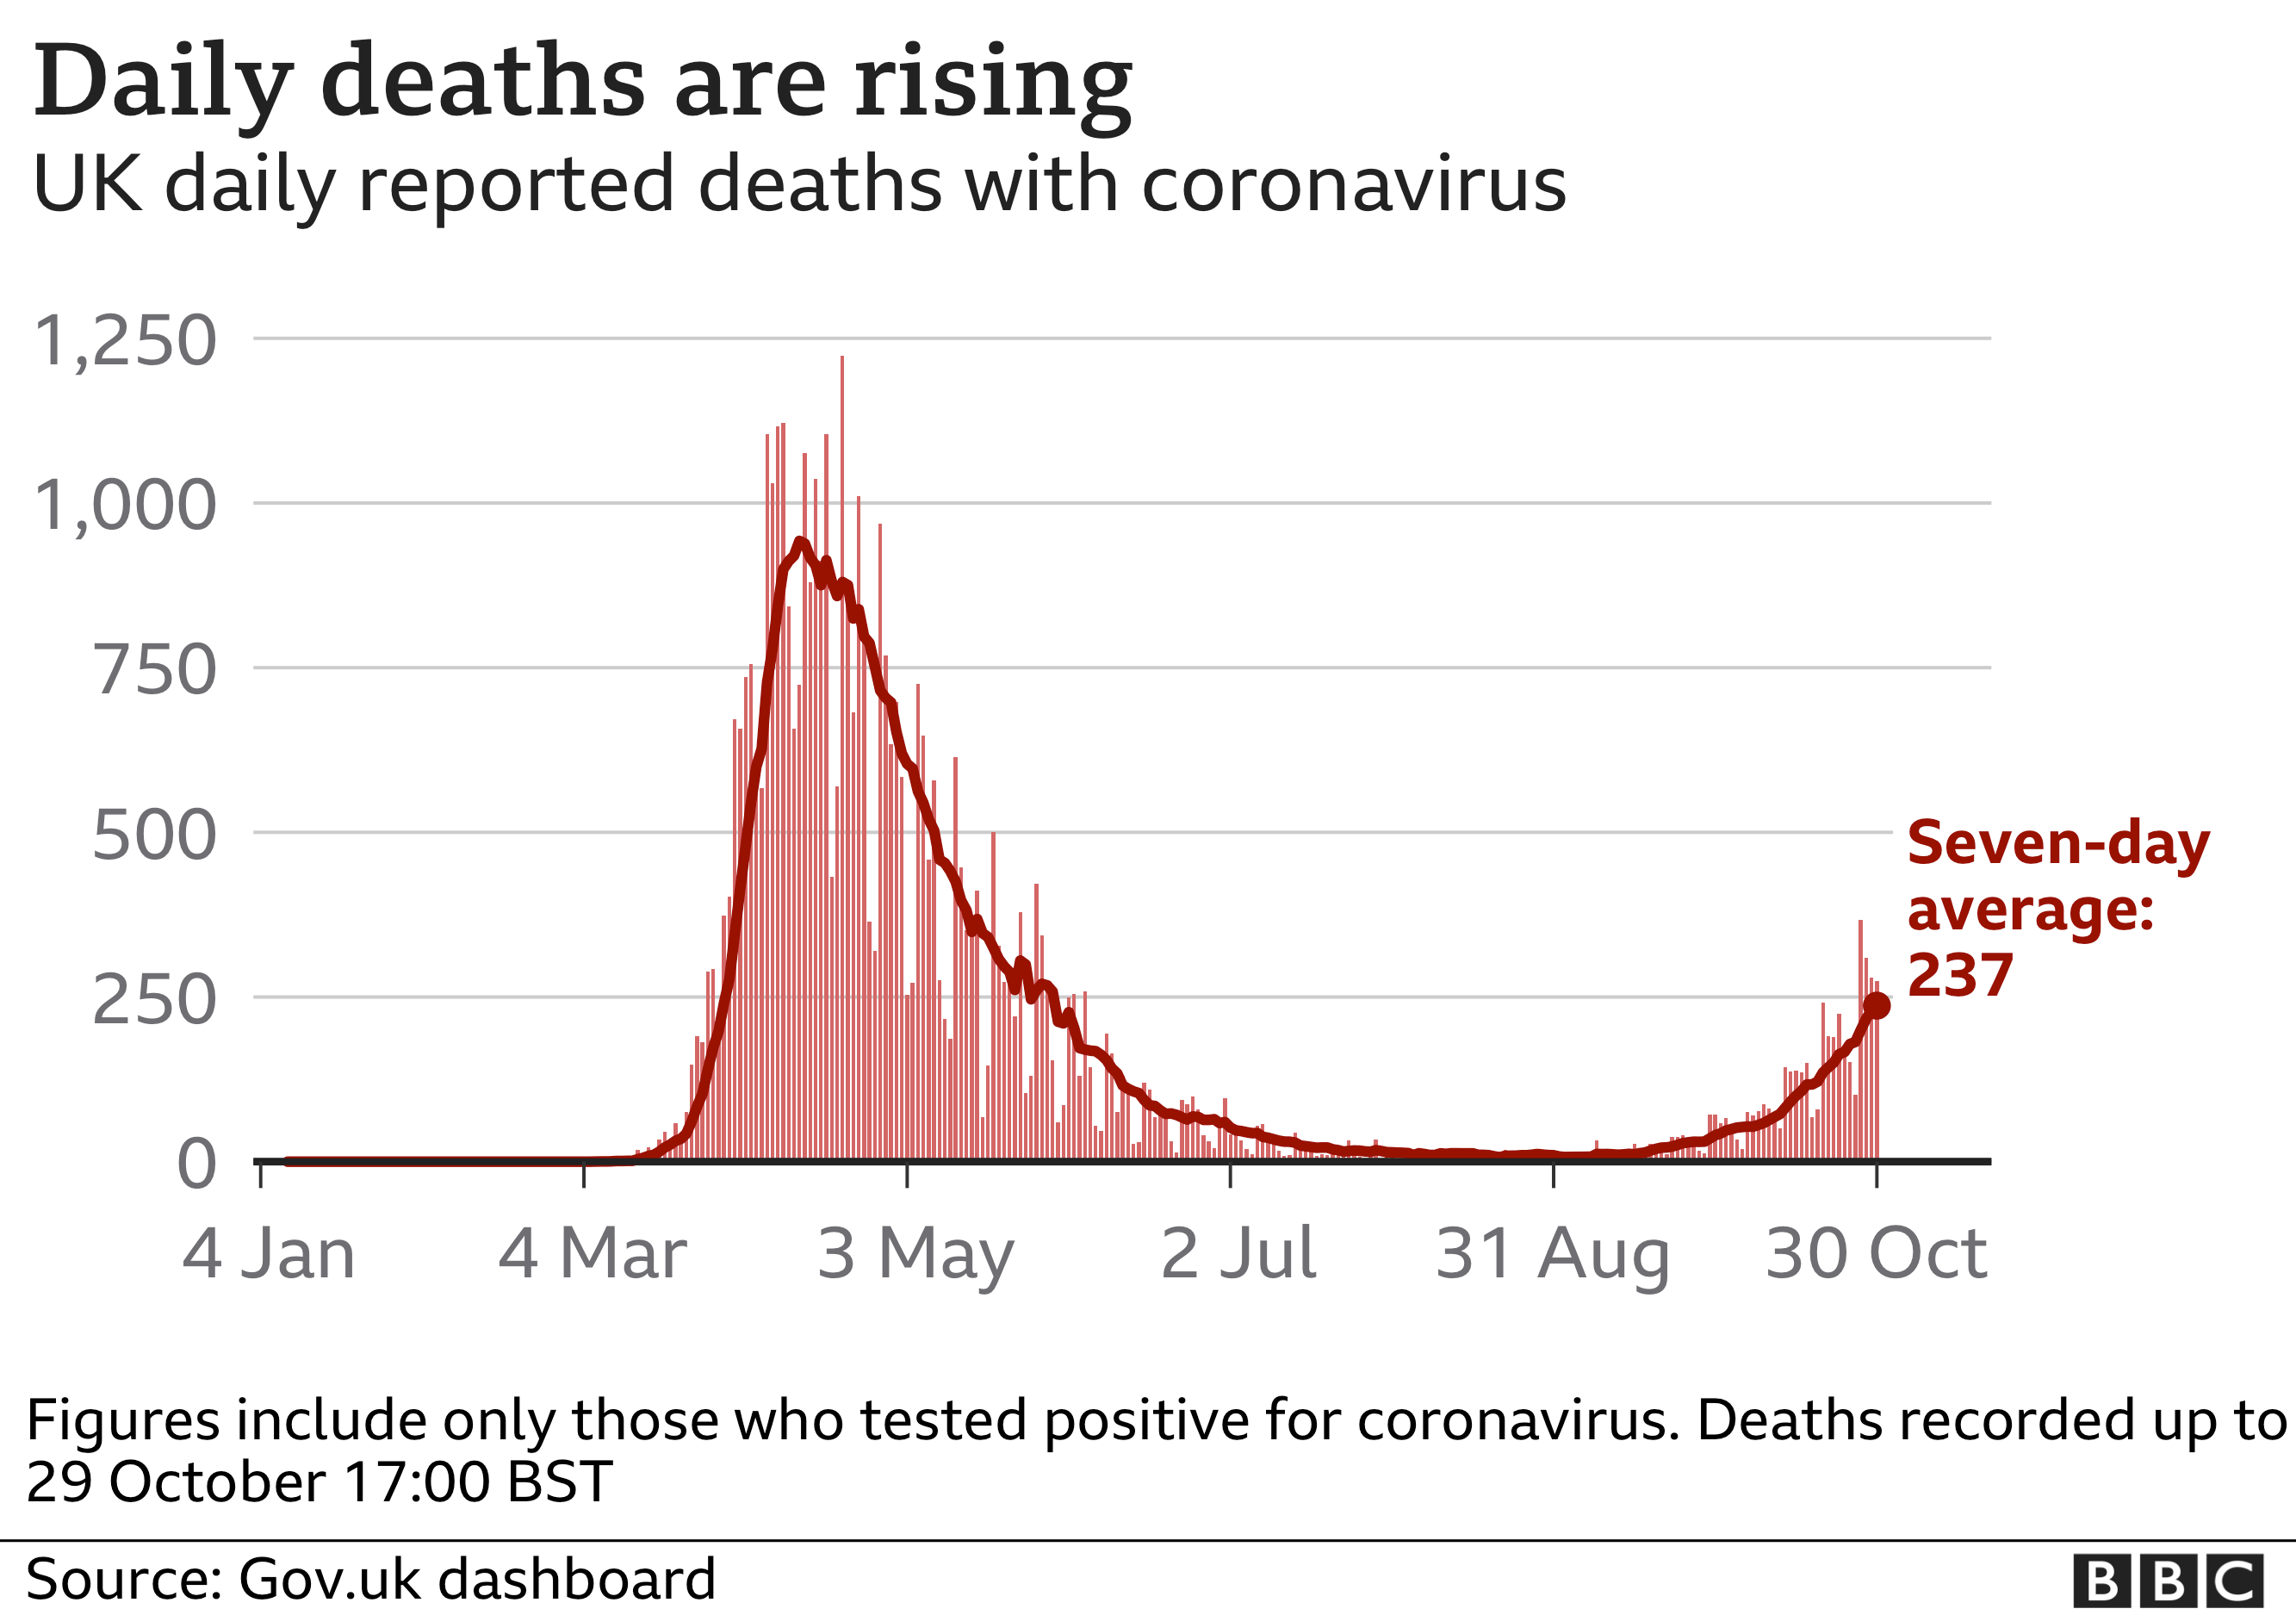 Chart shows daily deaths are continuing to rise